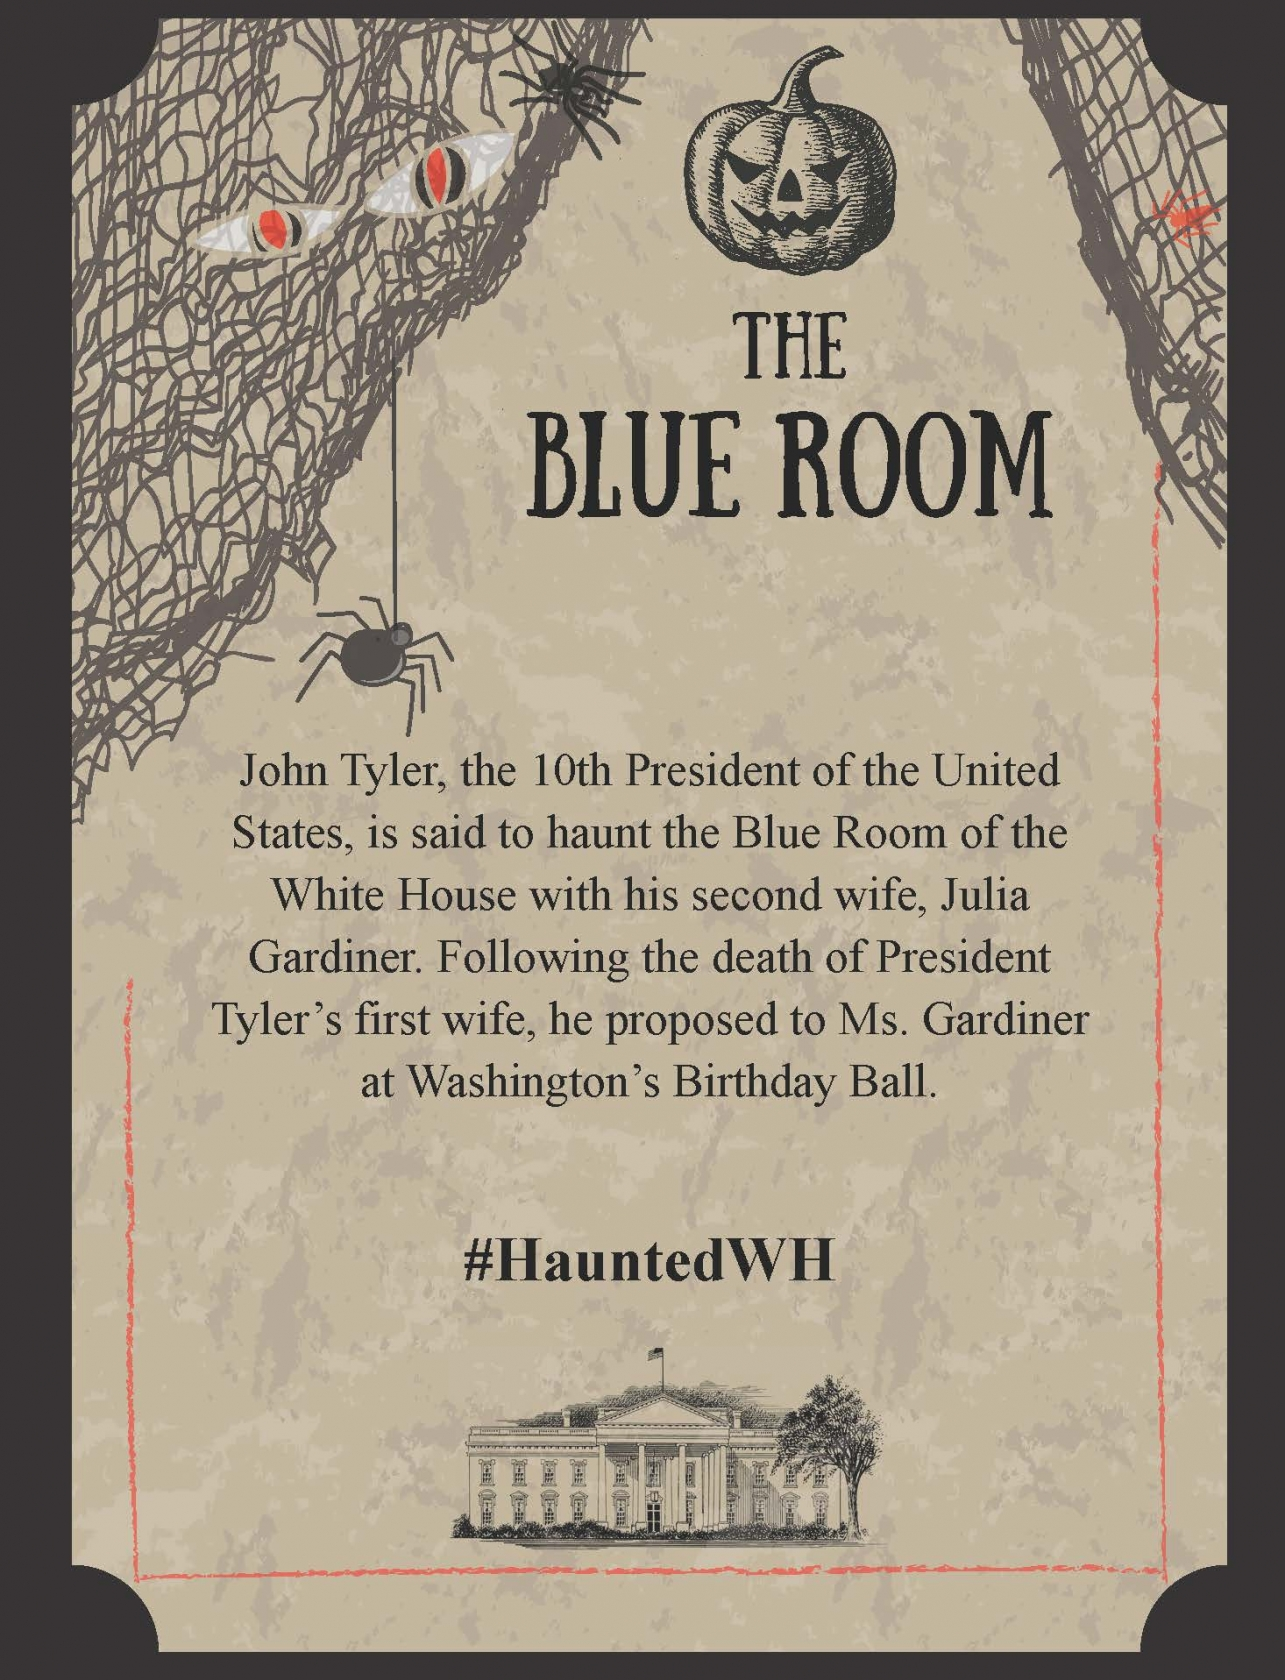 John Tyler, the 10th President of the United States, is said to haunt the Blue Room of the White House with his second wife, Julia Gardiner. Following the death of President Tyler's first wife, he proposed to Ms. Gardiner at Washington's Birthday Ball.